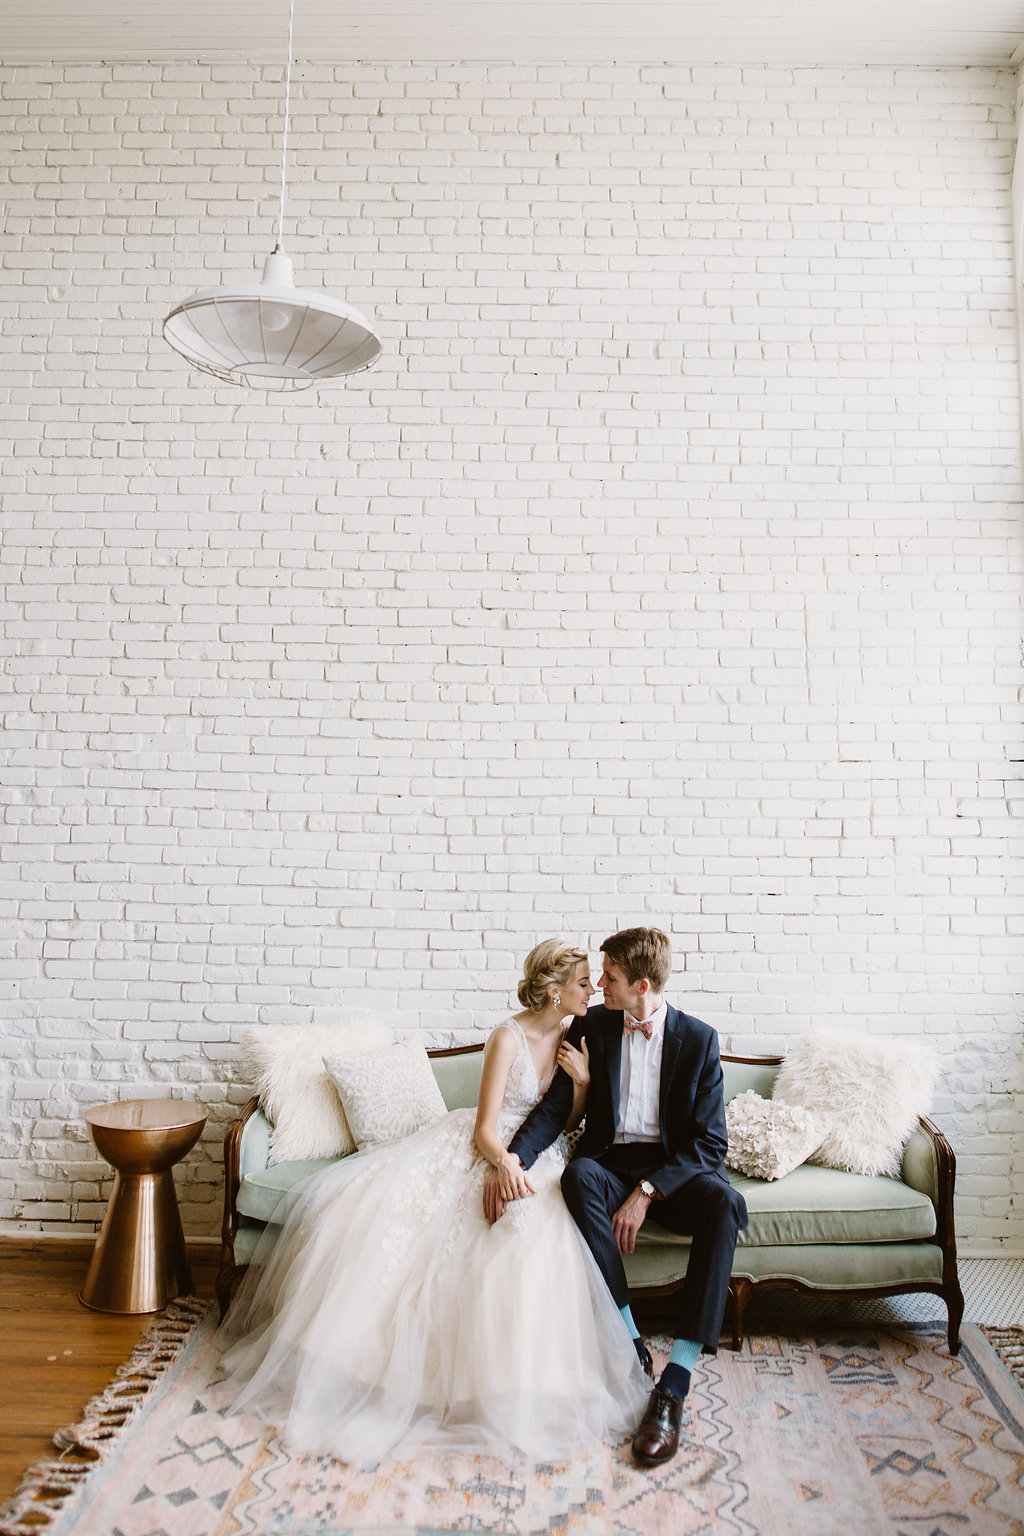 One Eleven East Wedding Ideas